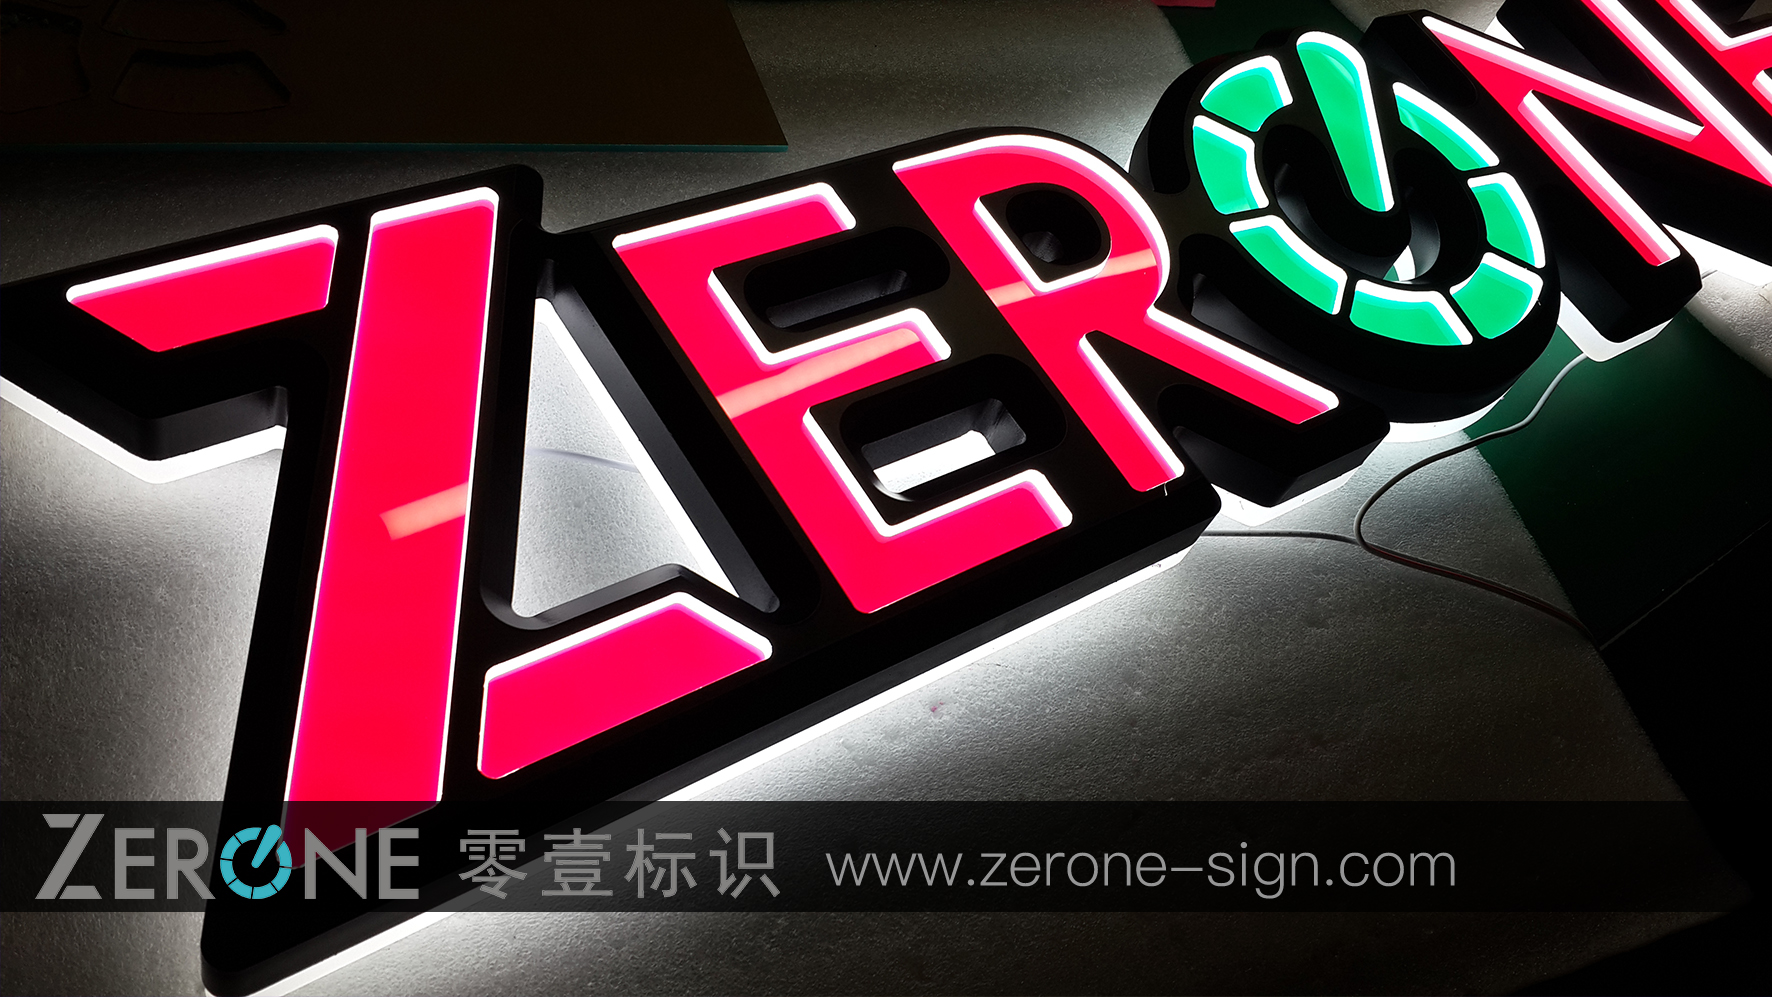 zerone sign